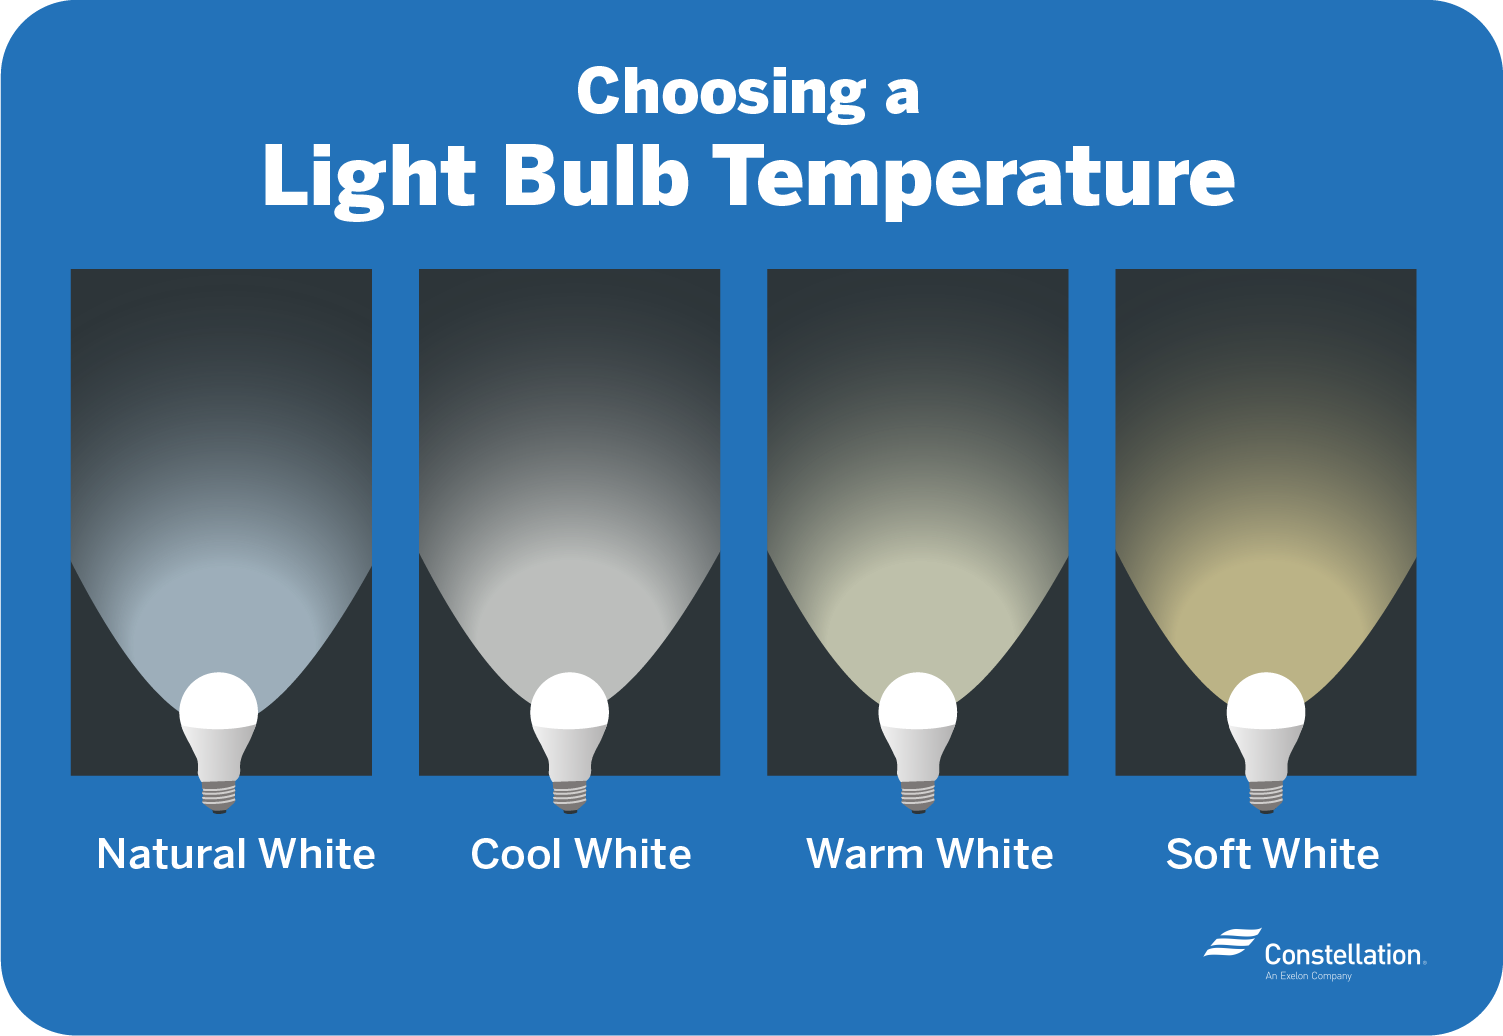 Choosing a light bulb temperature